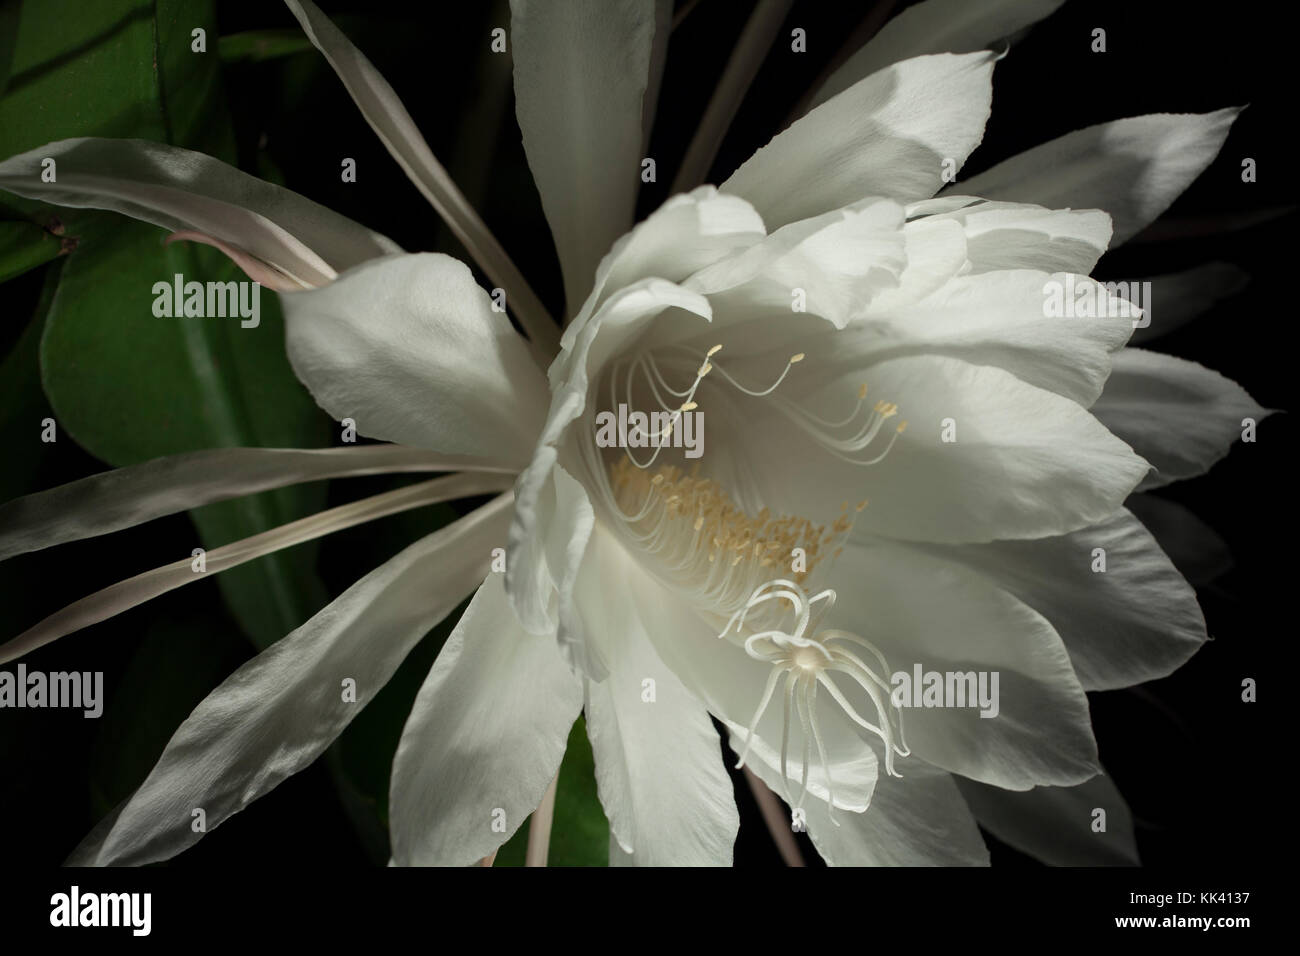 The Night Blooming Cereus Blooms Usually Only Once A Year And The